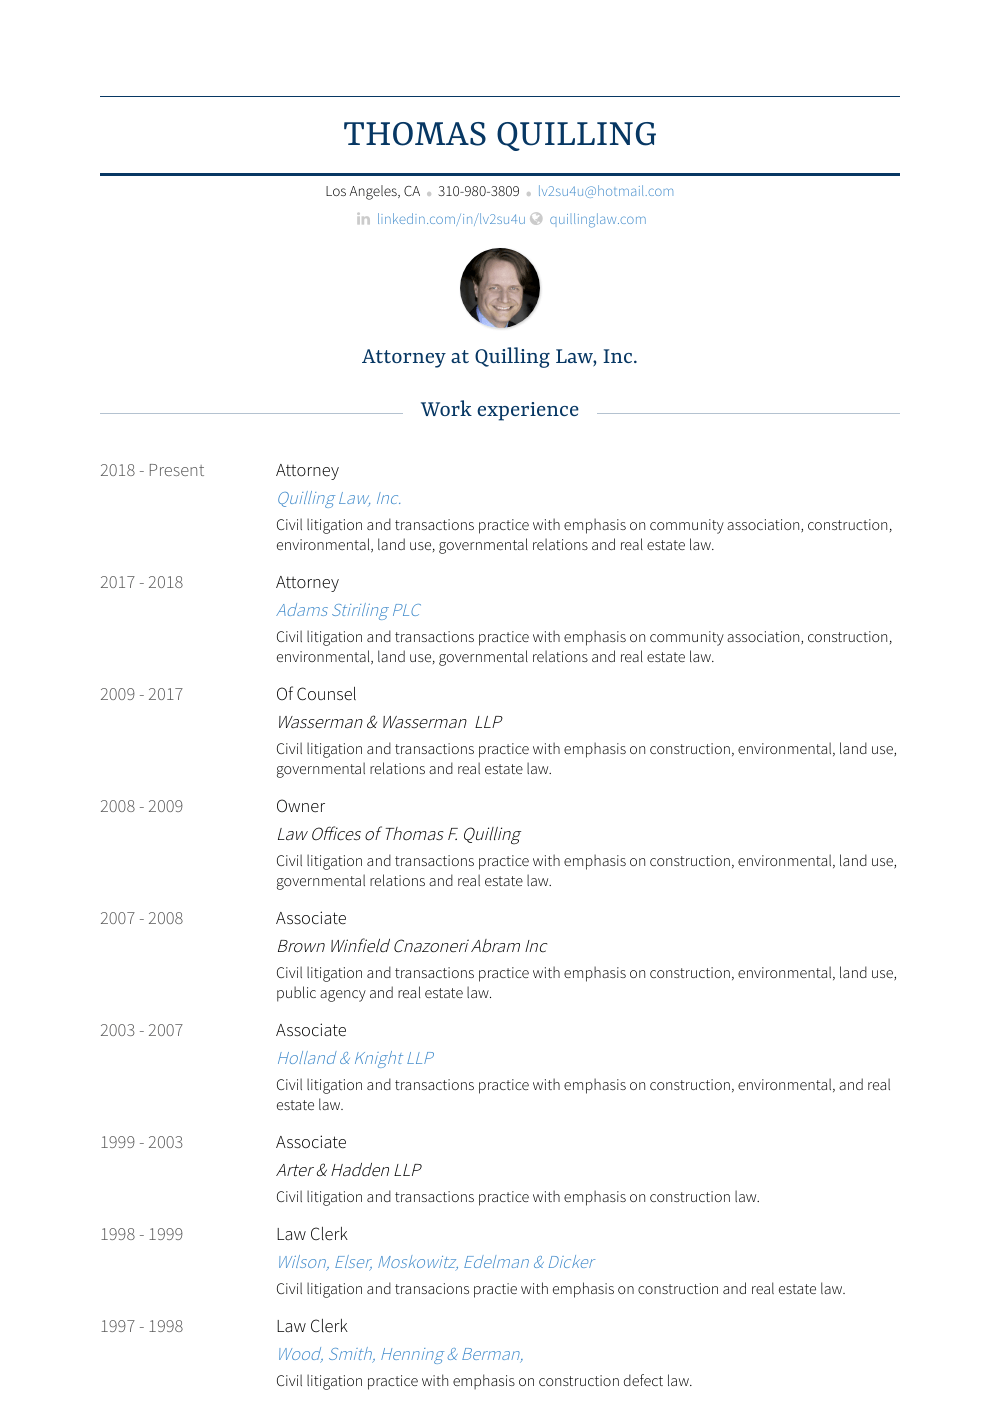 Of Counsel Resume Sample